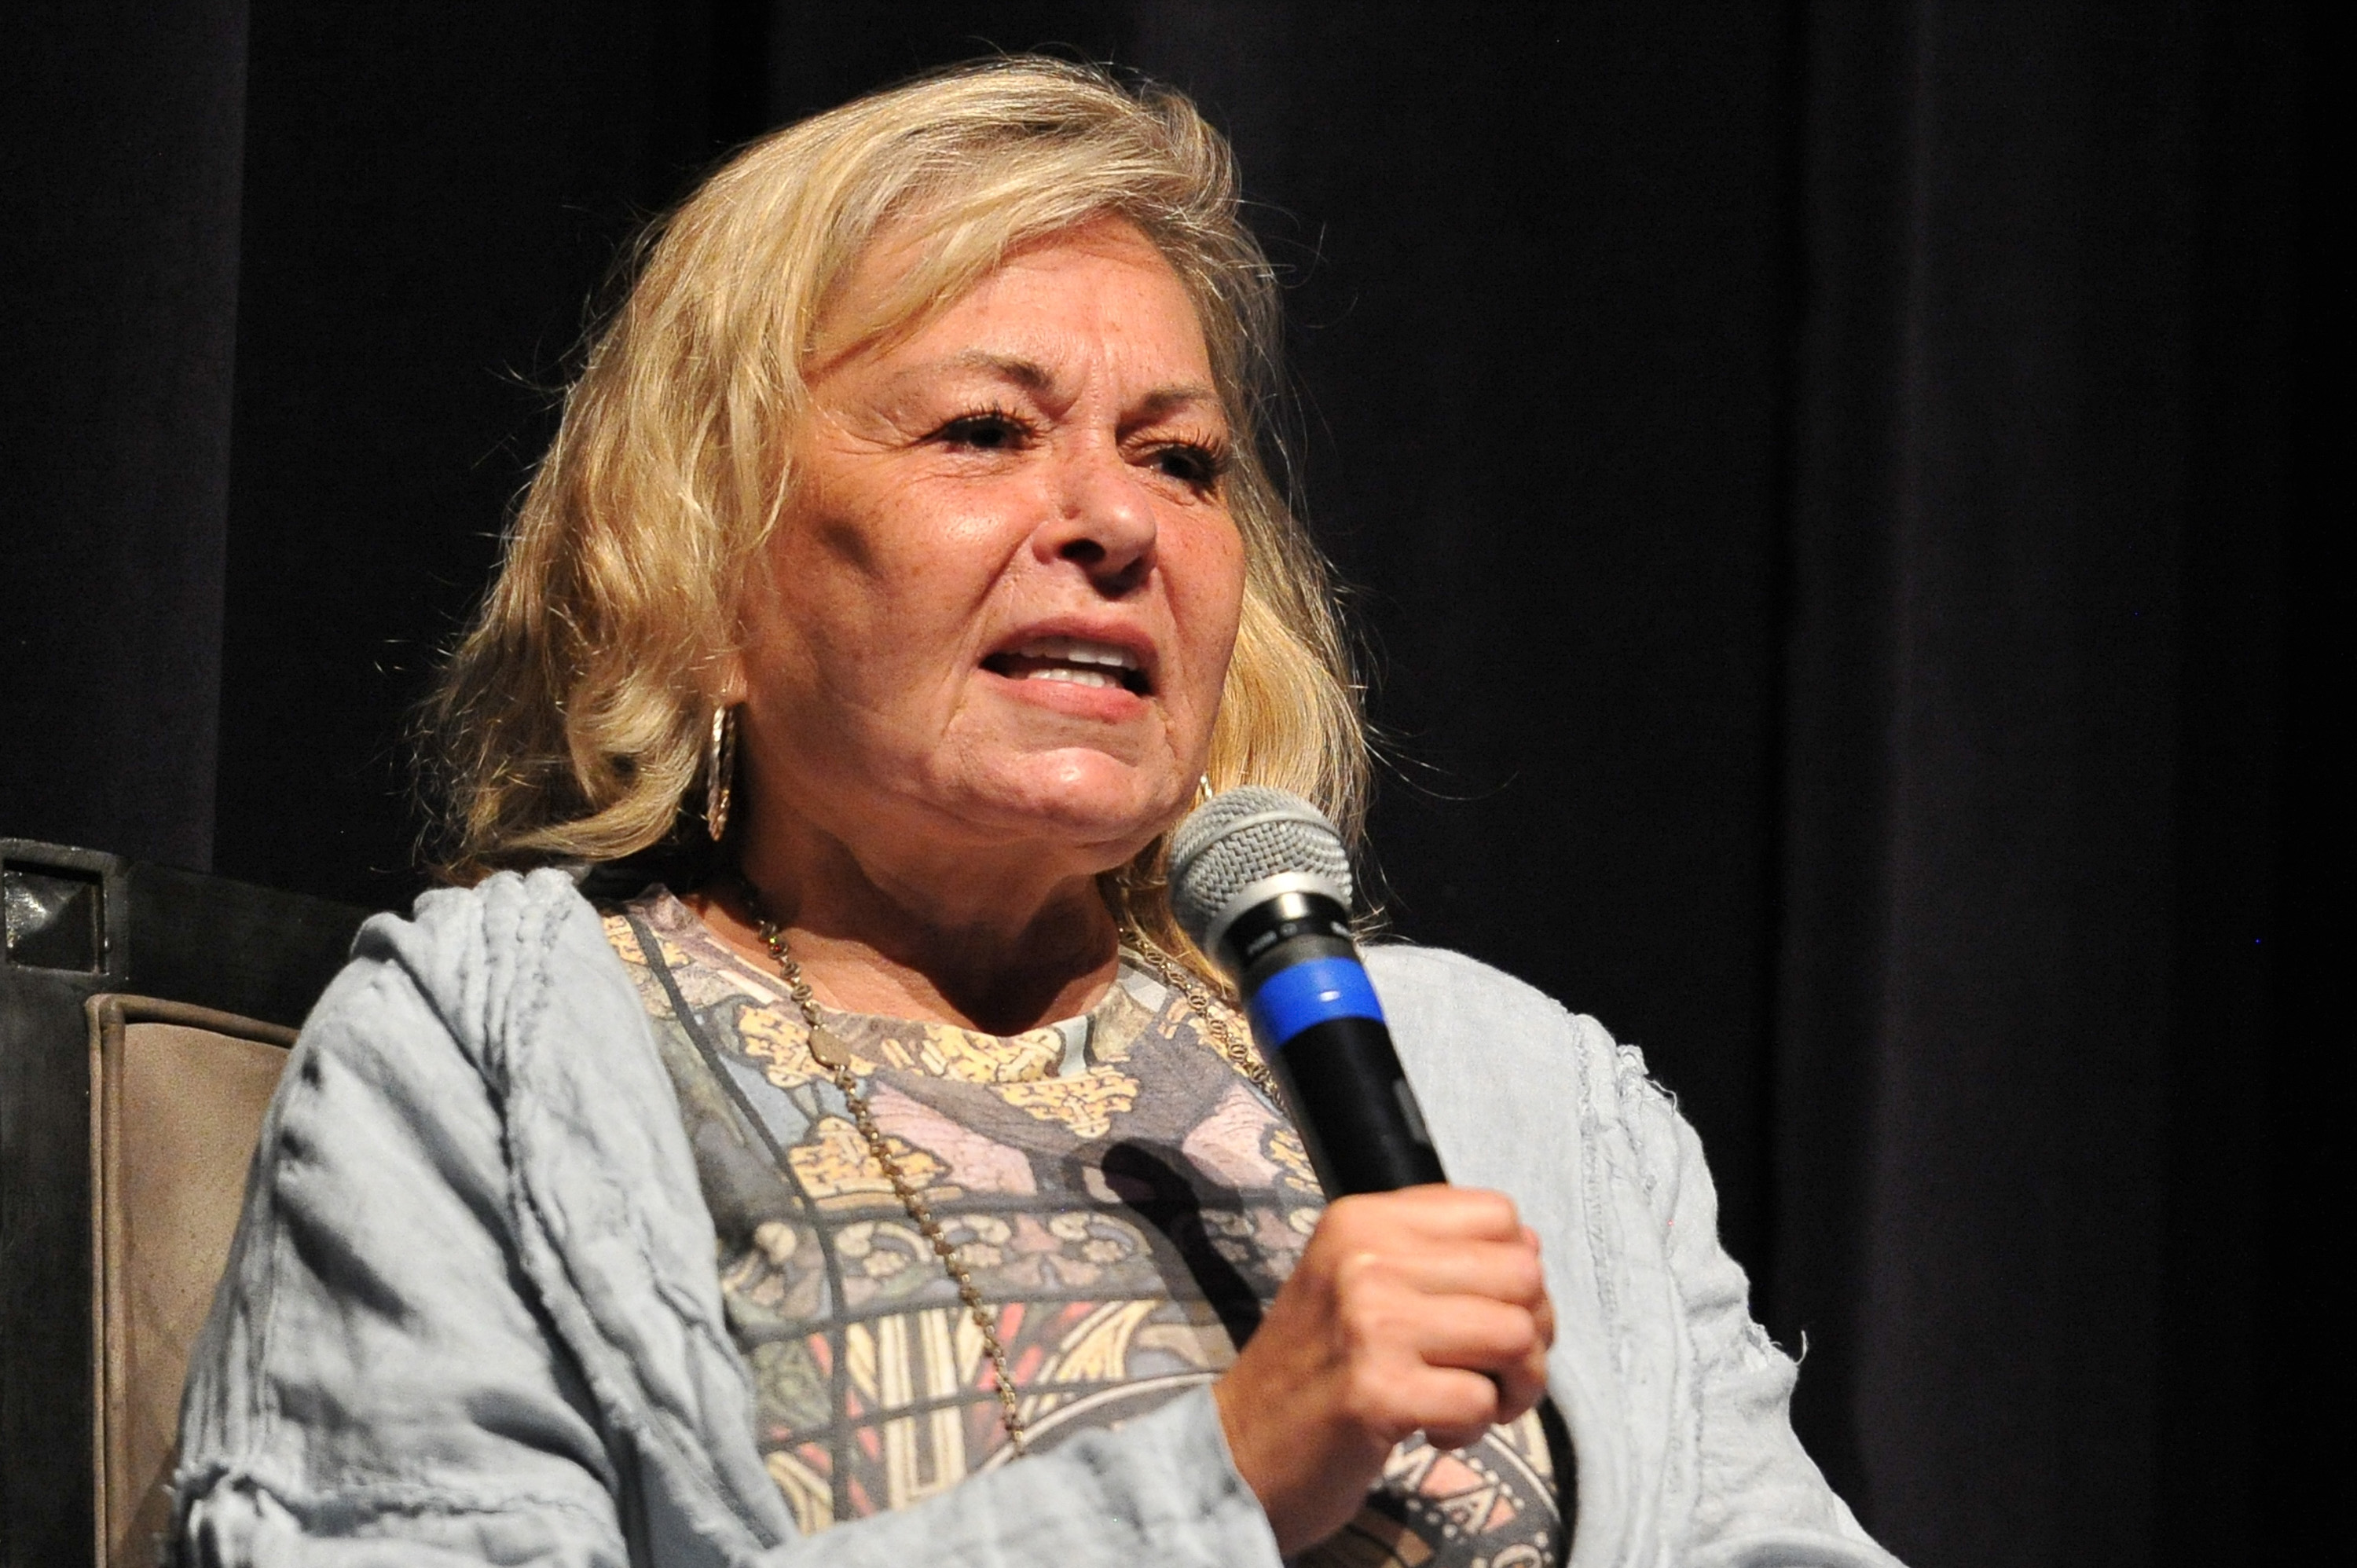 Roseanne Barr participates in 'Is America a Forgiving Nation?,'' a Yom Kippur eve talk on forgiveness hosted by the World Values Network and the Jewish Journal at Saban Theatre on September 17, 2018 in Beverly Hills, California. (Rachel Luna / Getty Images)